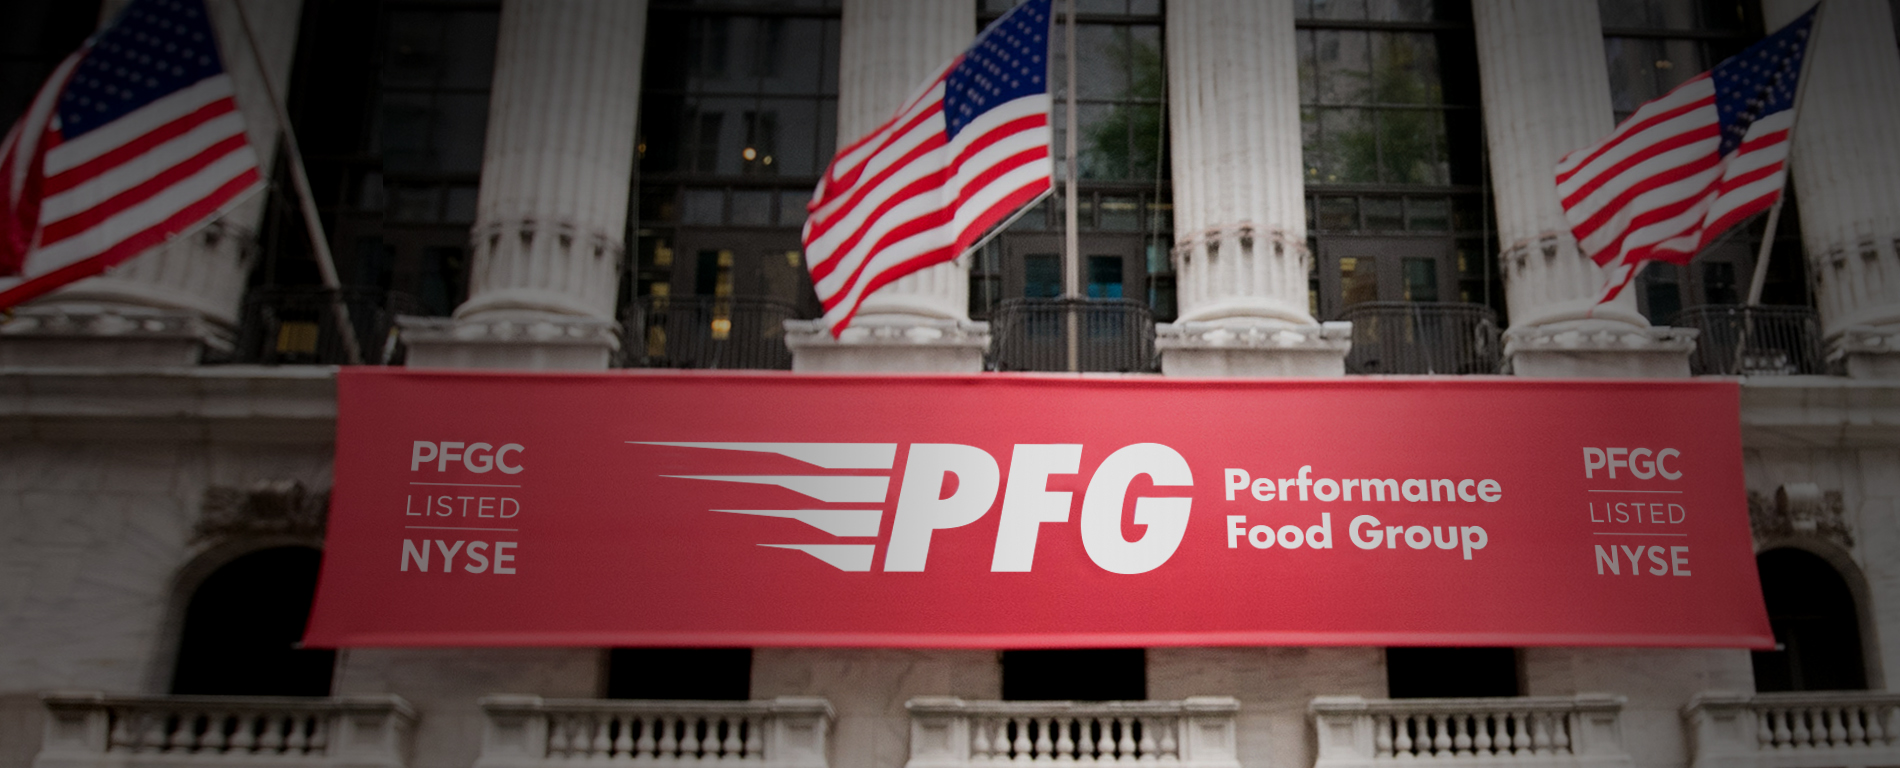 PFG Listed NYSE